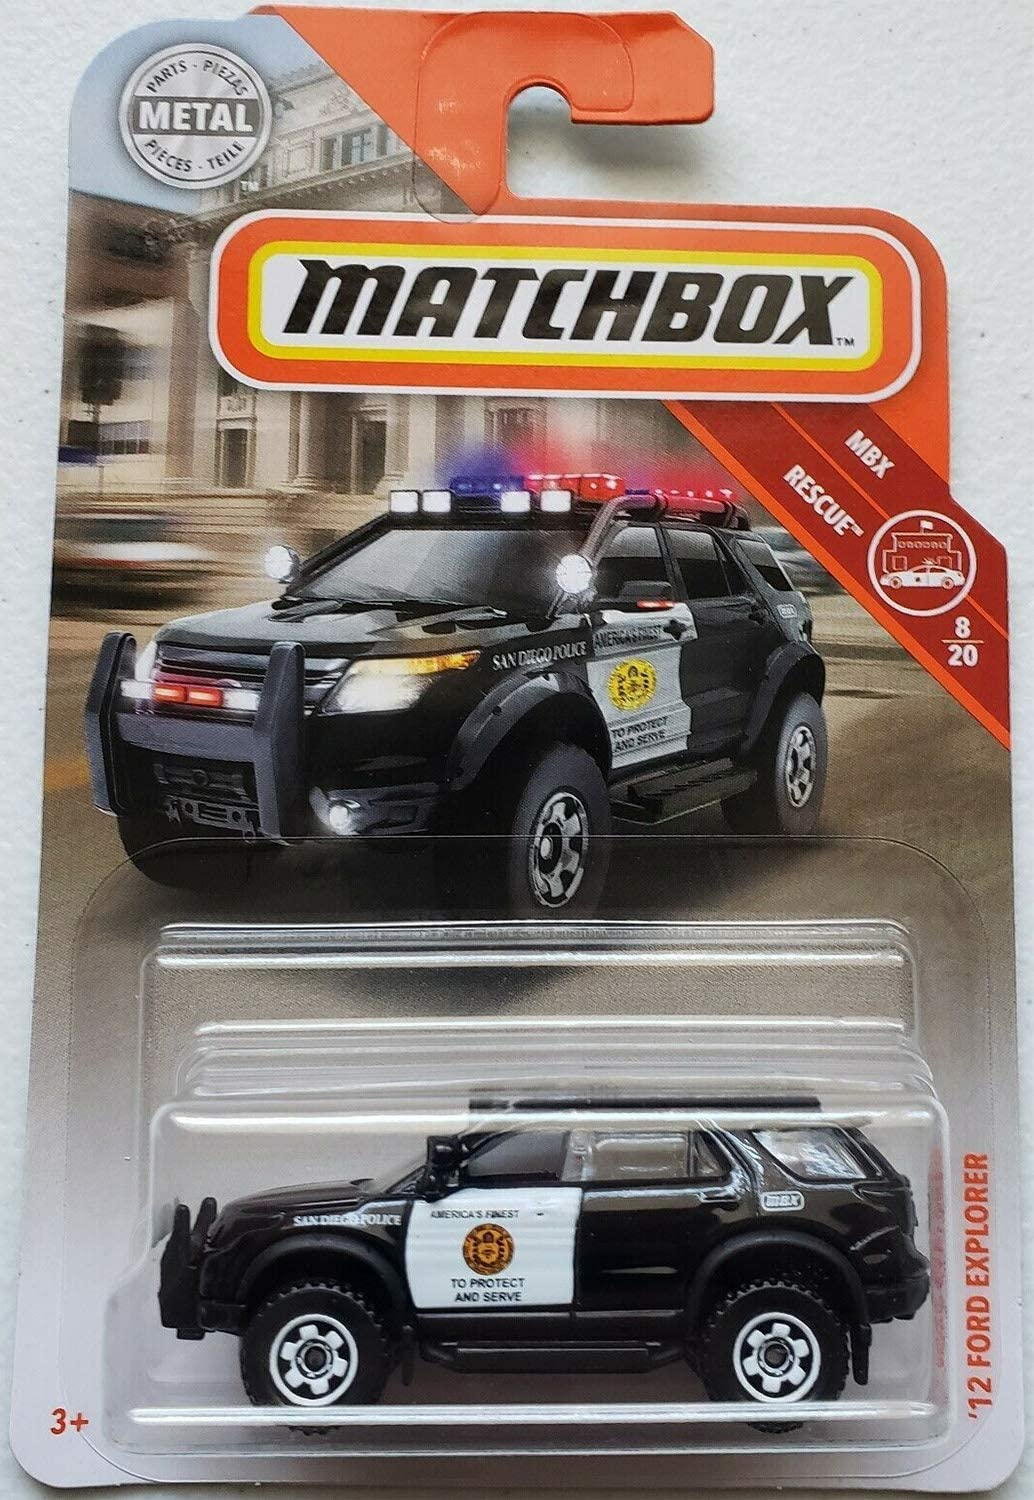 Matchbox mbx 12 Ford Explorer San Diego Police Rescue Series 1:64 Scale Collectible Die Cast Metal Toy Car Model 8/19